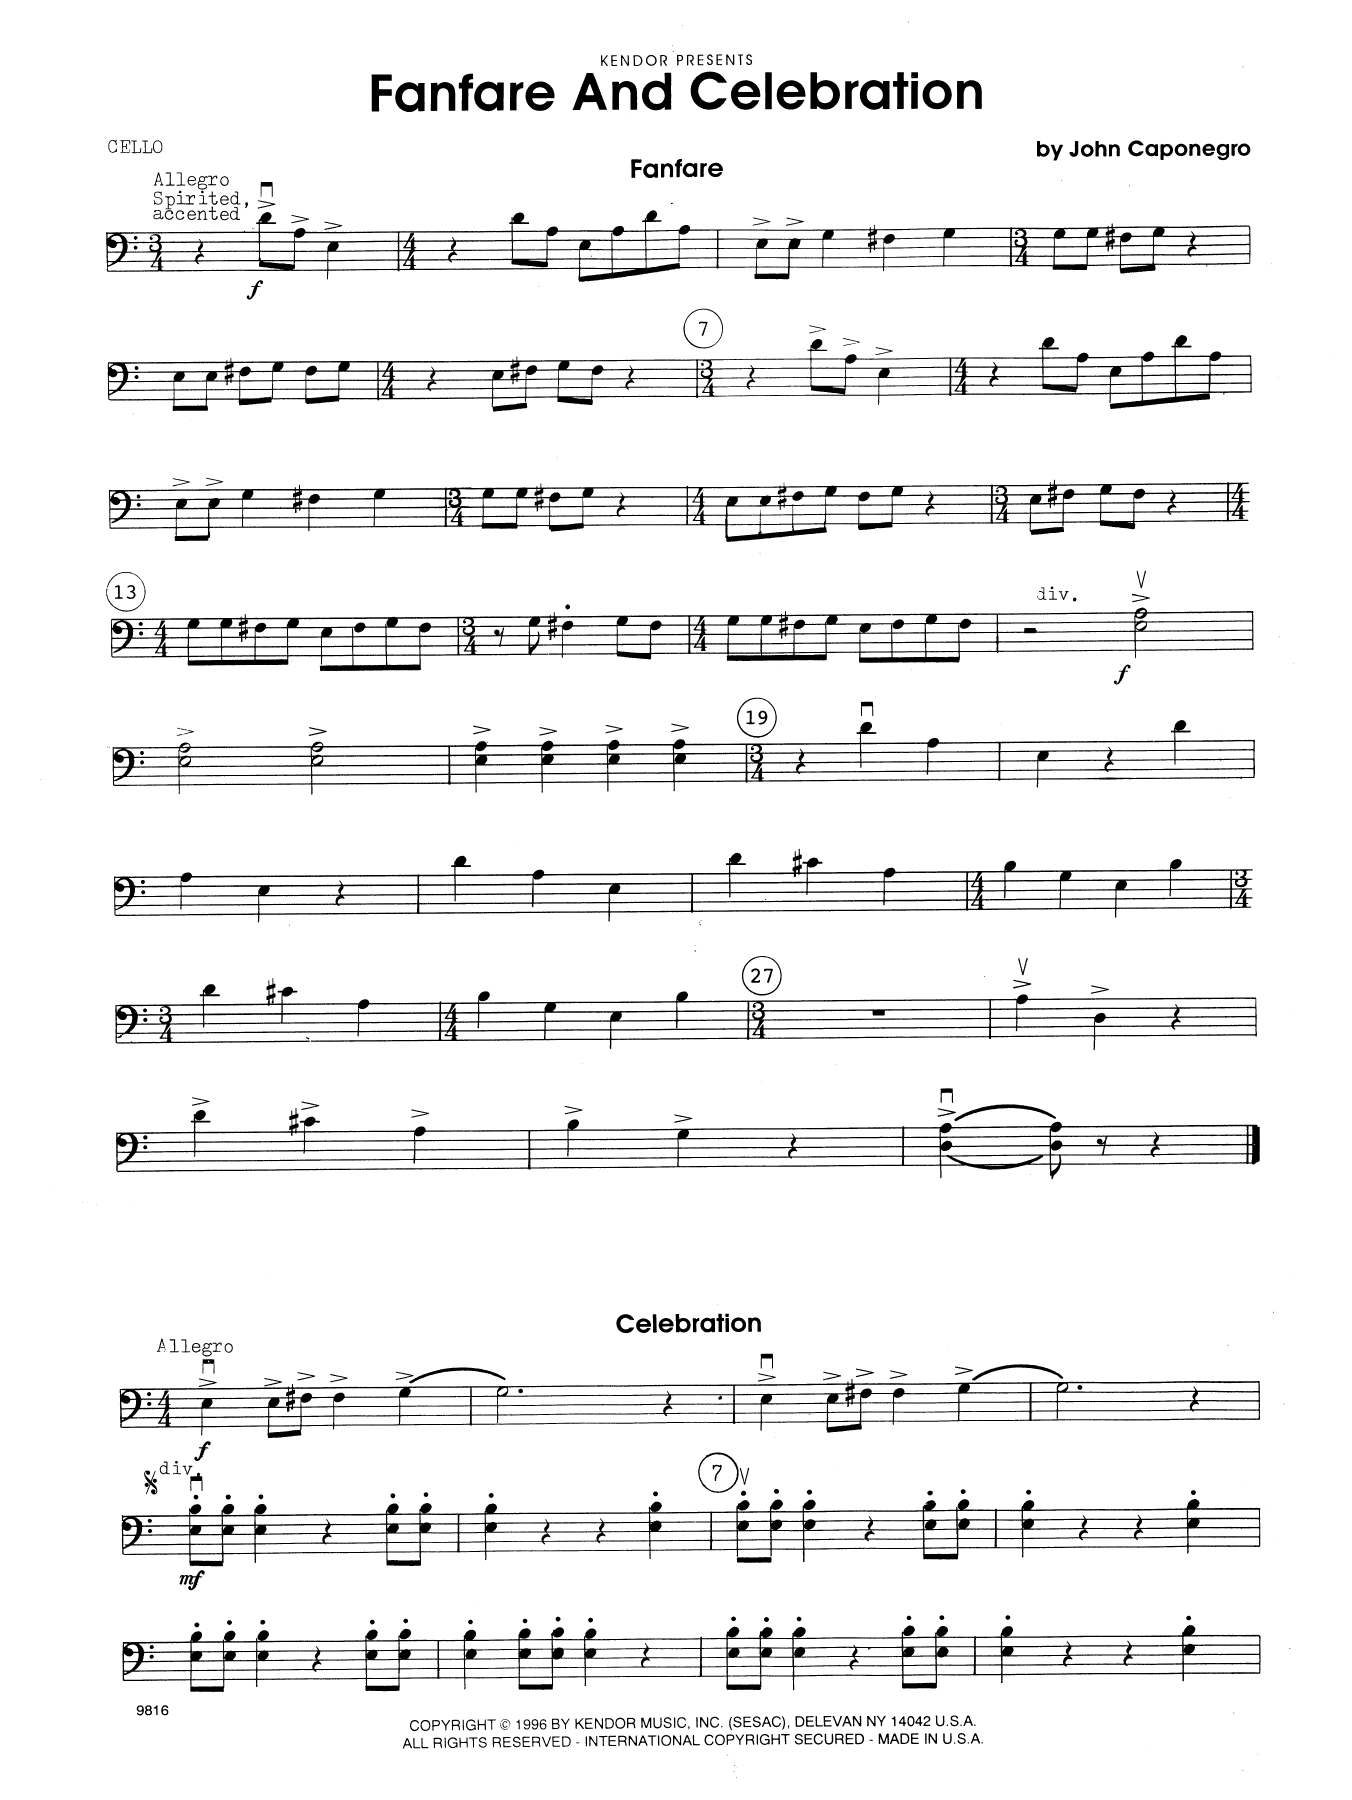 John Caponegro Fanfare and Celebration - Cello sheet music notes and chords. Download Printable PDF.